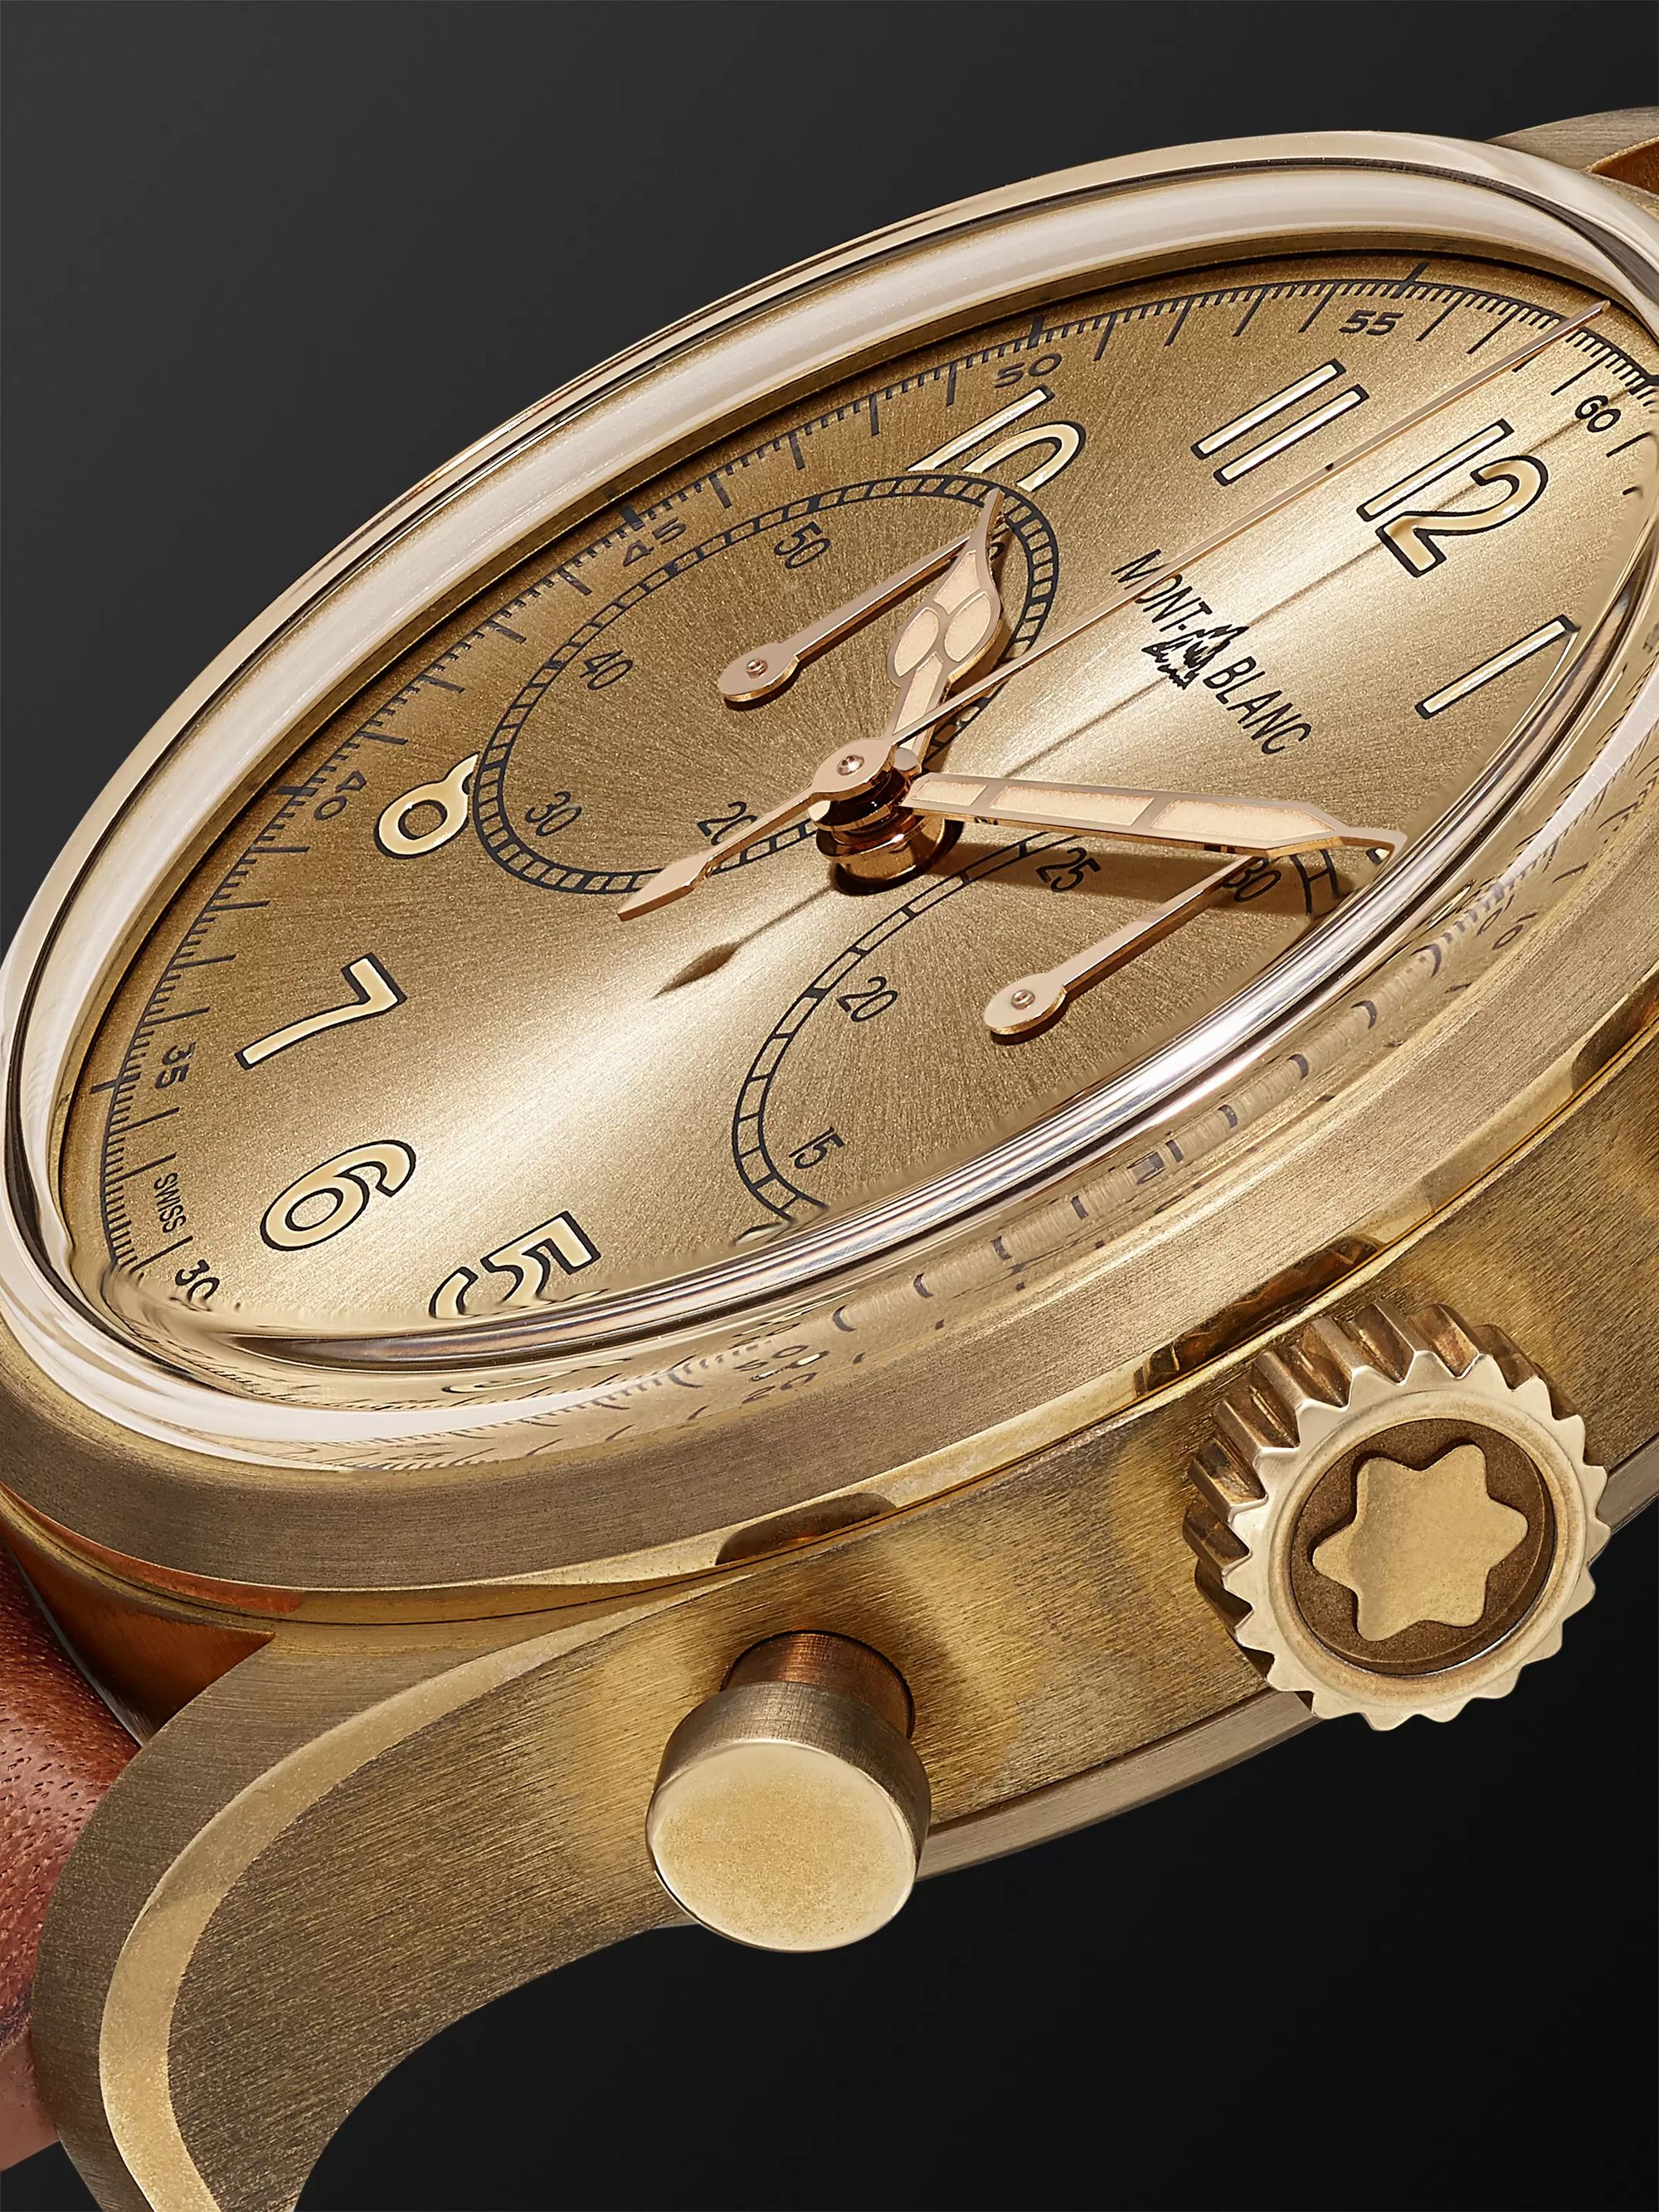 Montblanc 1858 Automatic Chronograph 42mm Bronze and Leather Watch, Ref. No. 118223